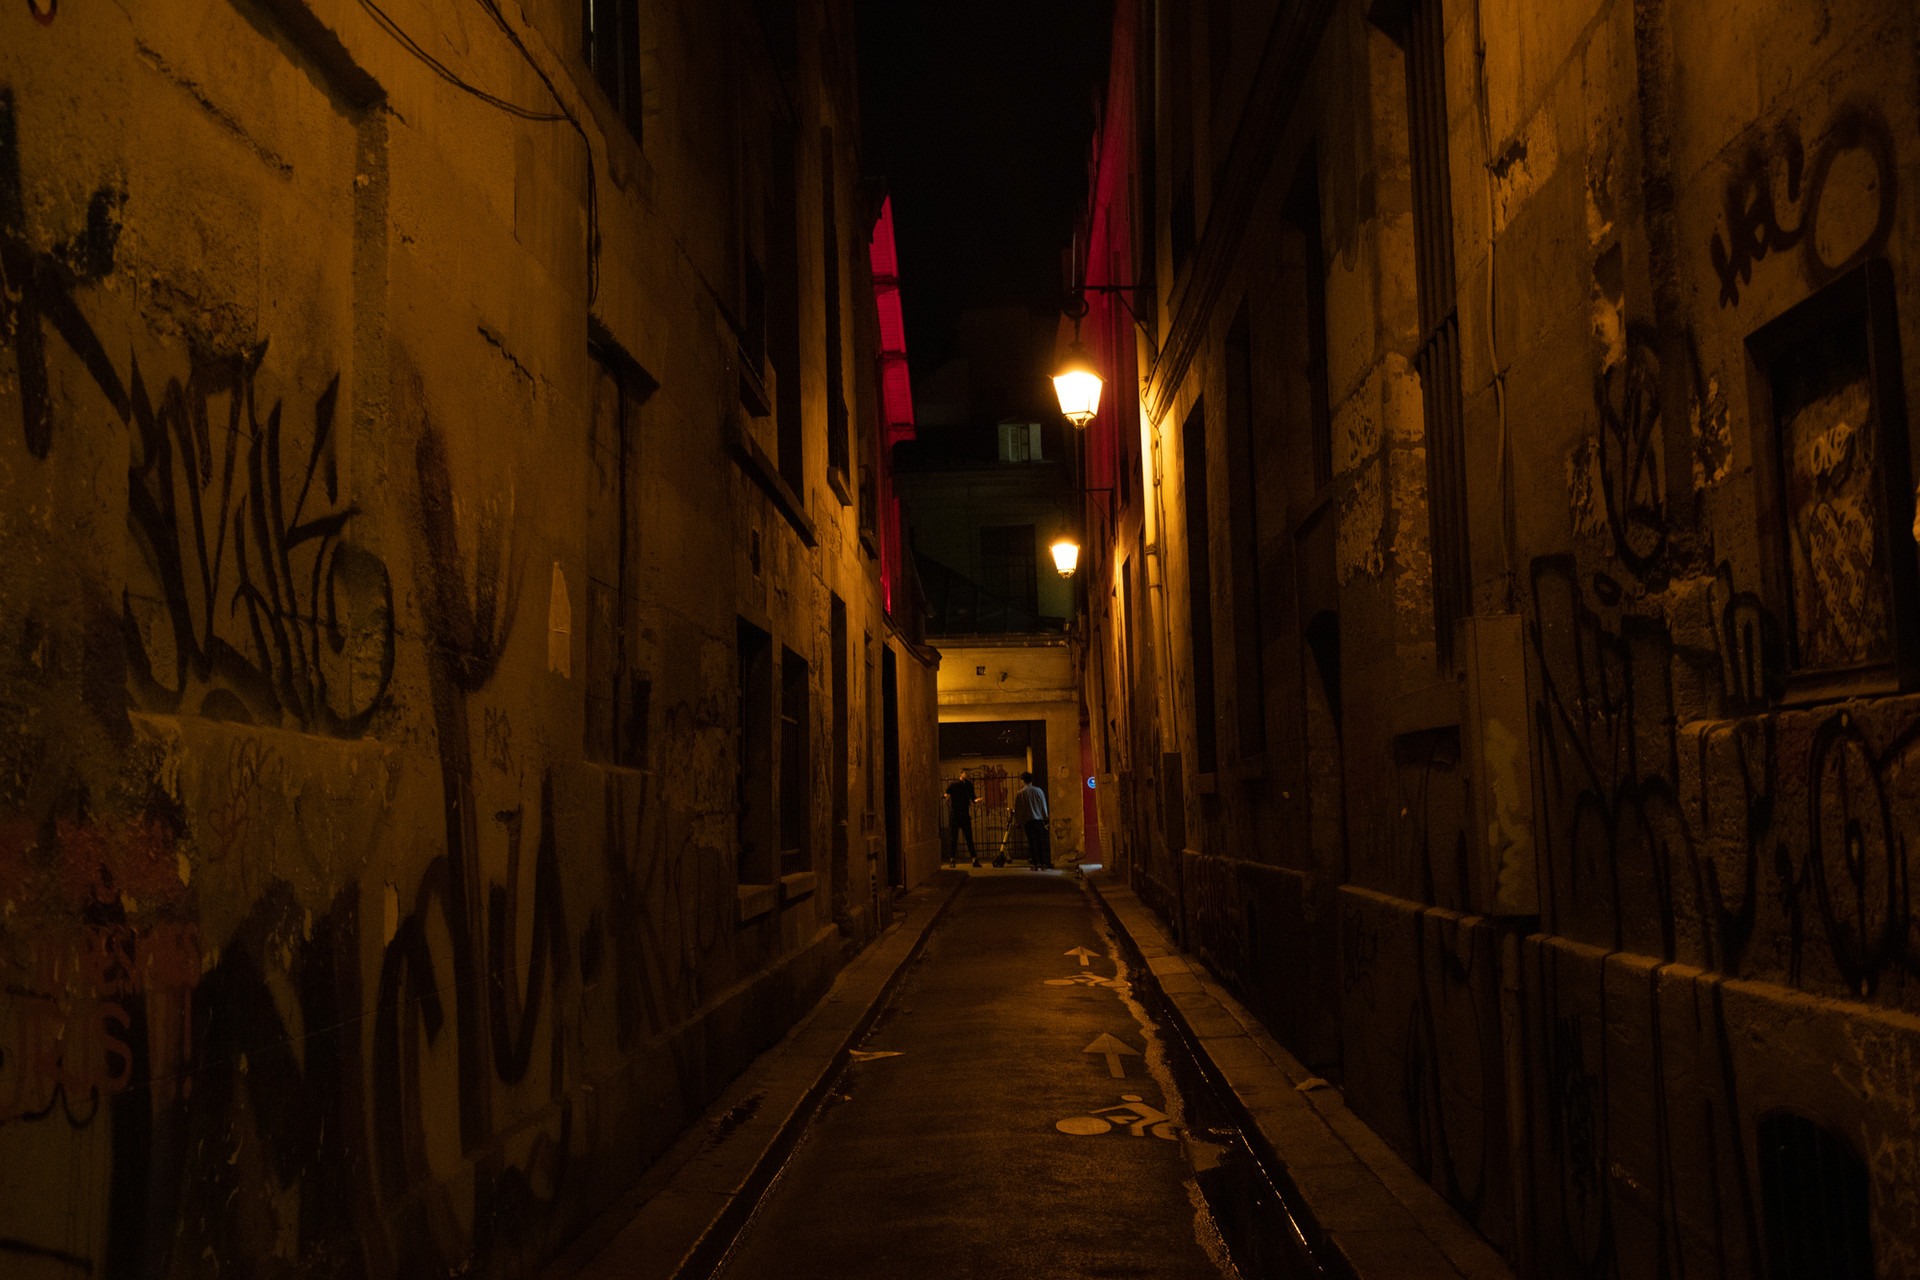 Marais at night